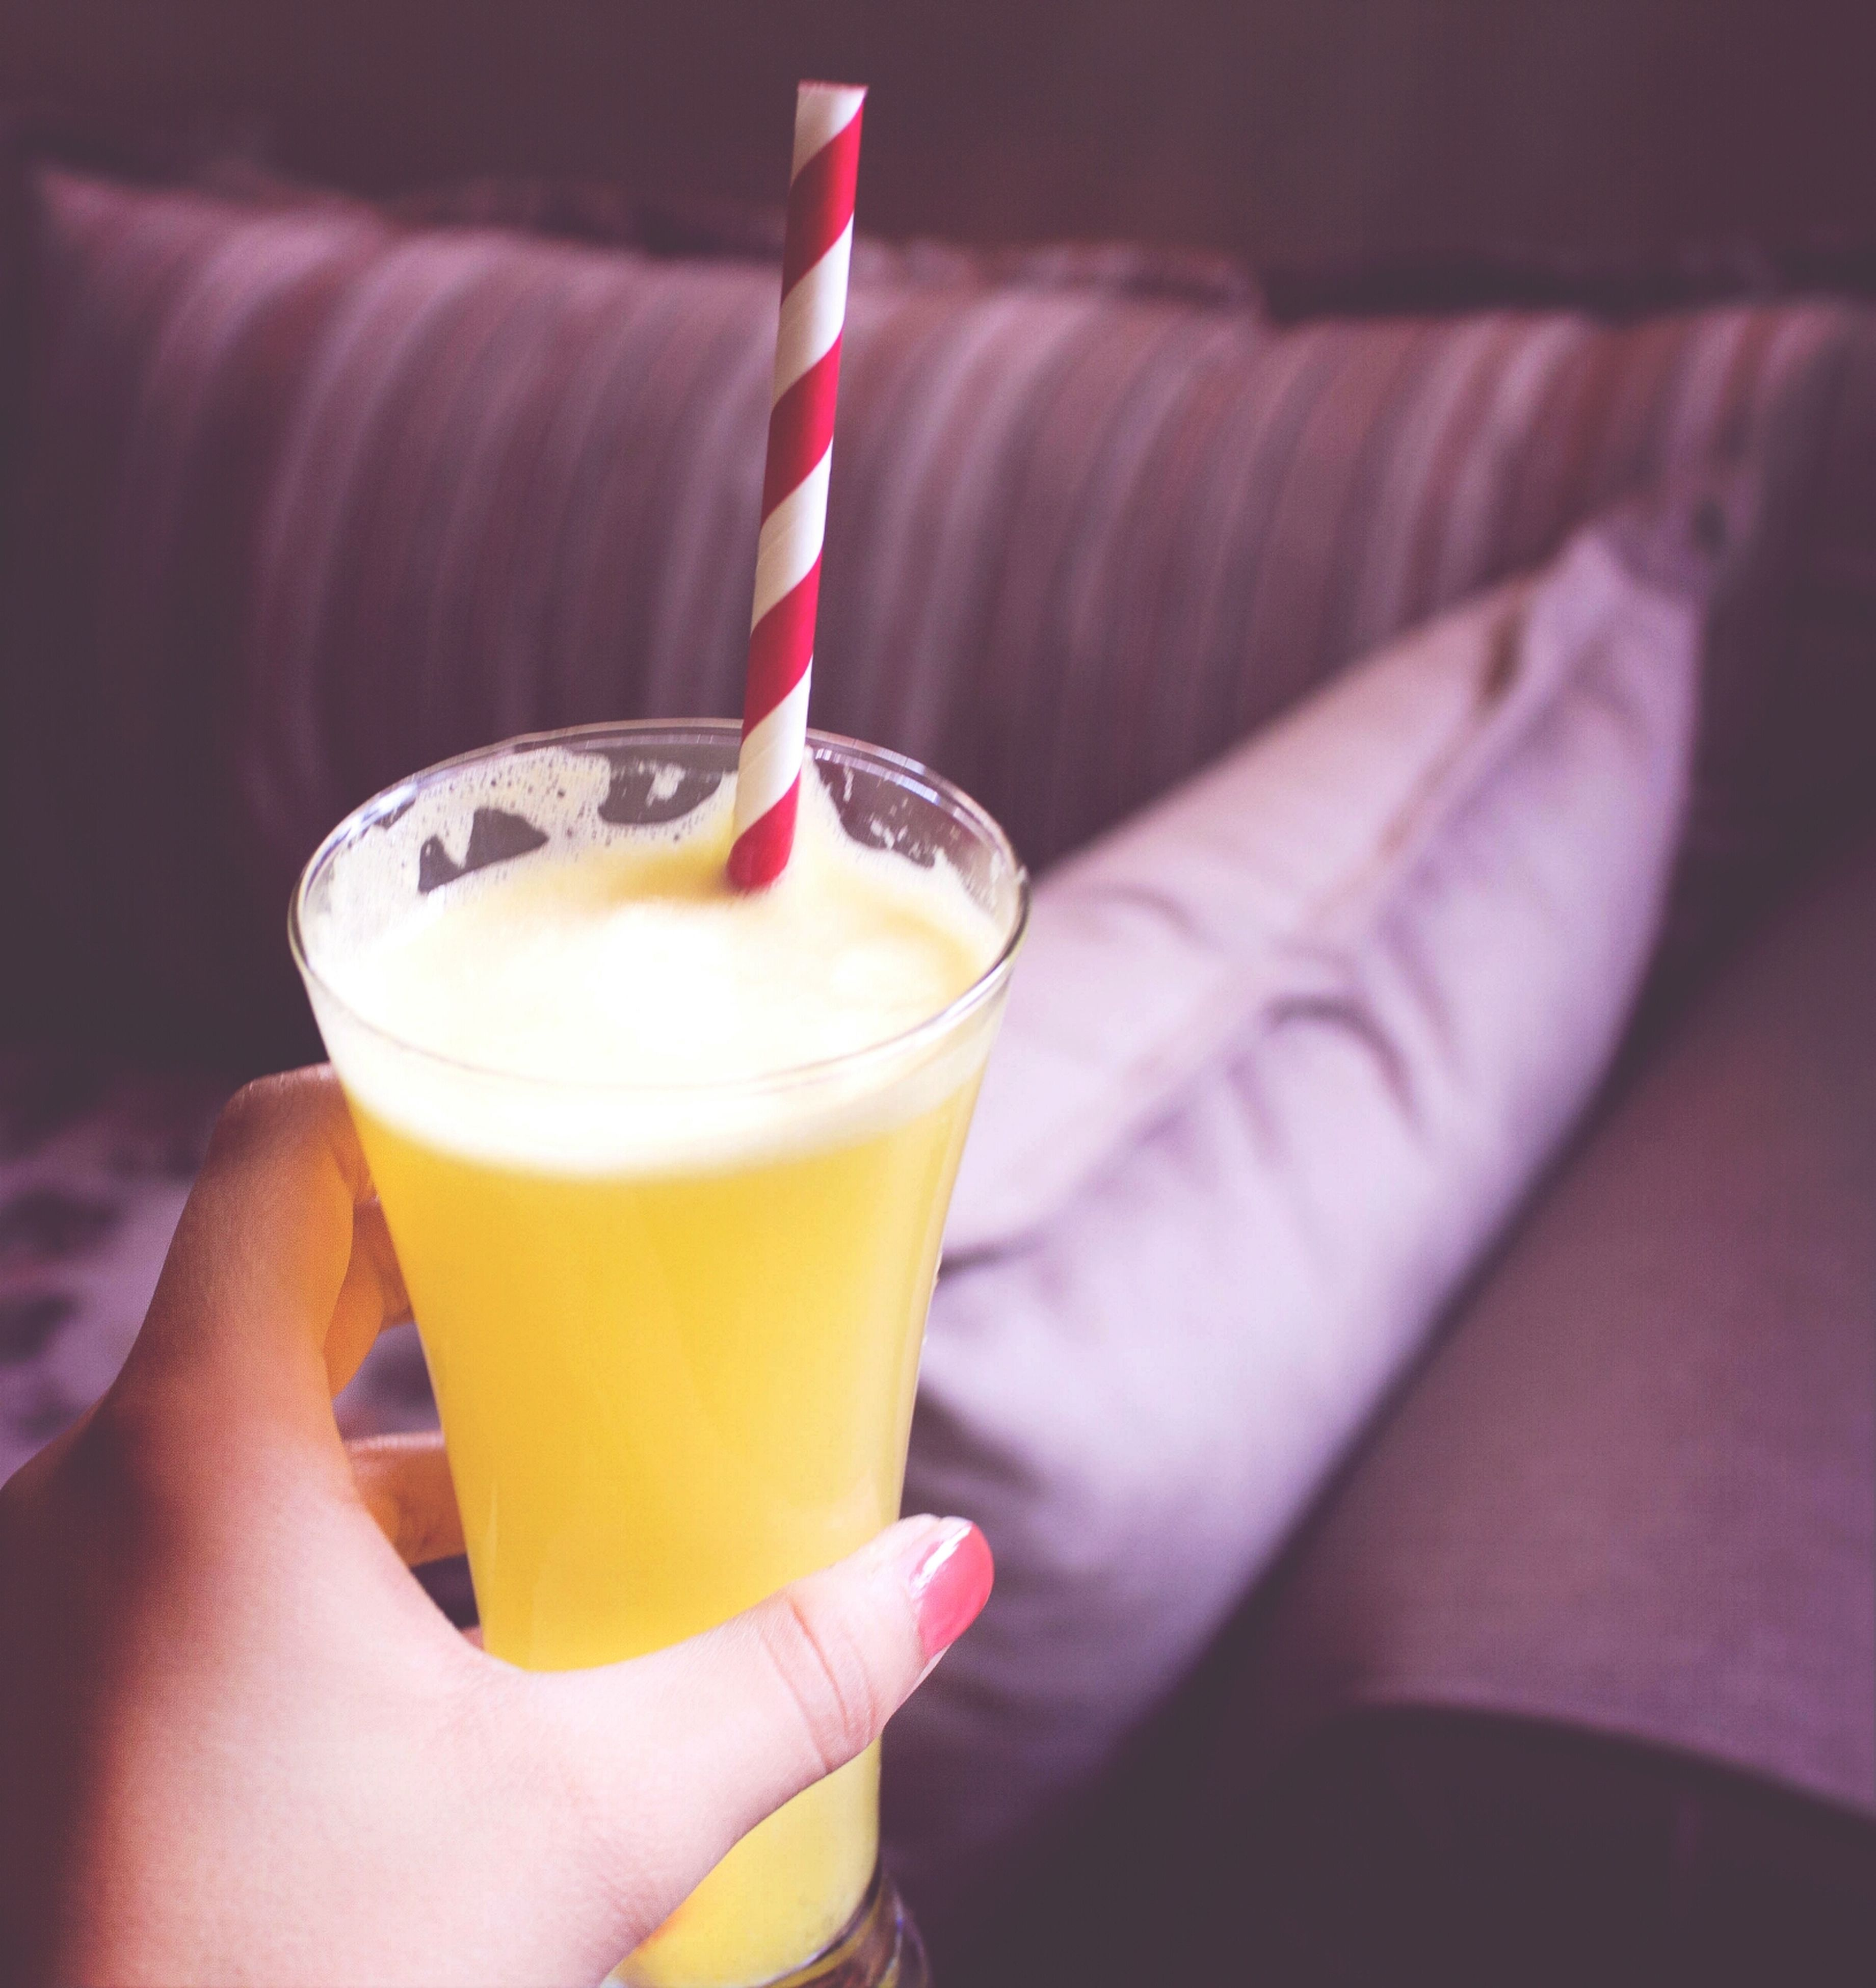 food and drink, drink, refreshment, freshness, person, indoors, drinking glass, close-up, table, holding, part of, drinking straw, focus on foreground, indulgence, sweet food, cropped, still life